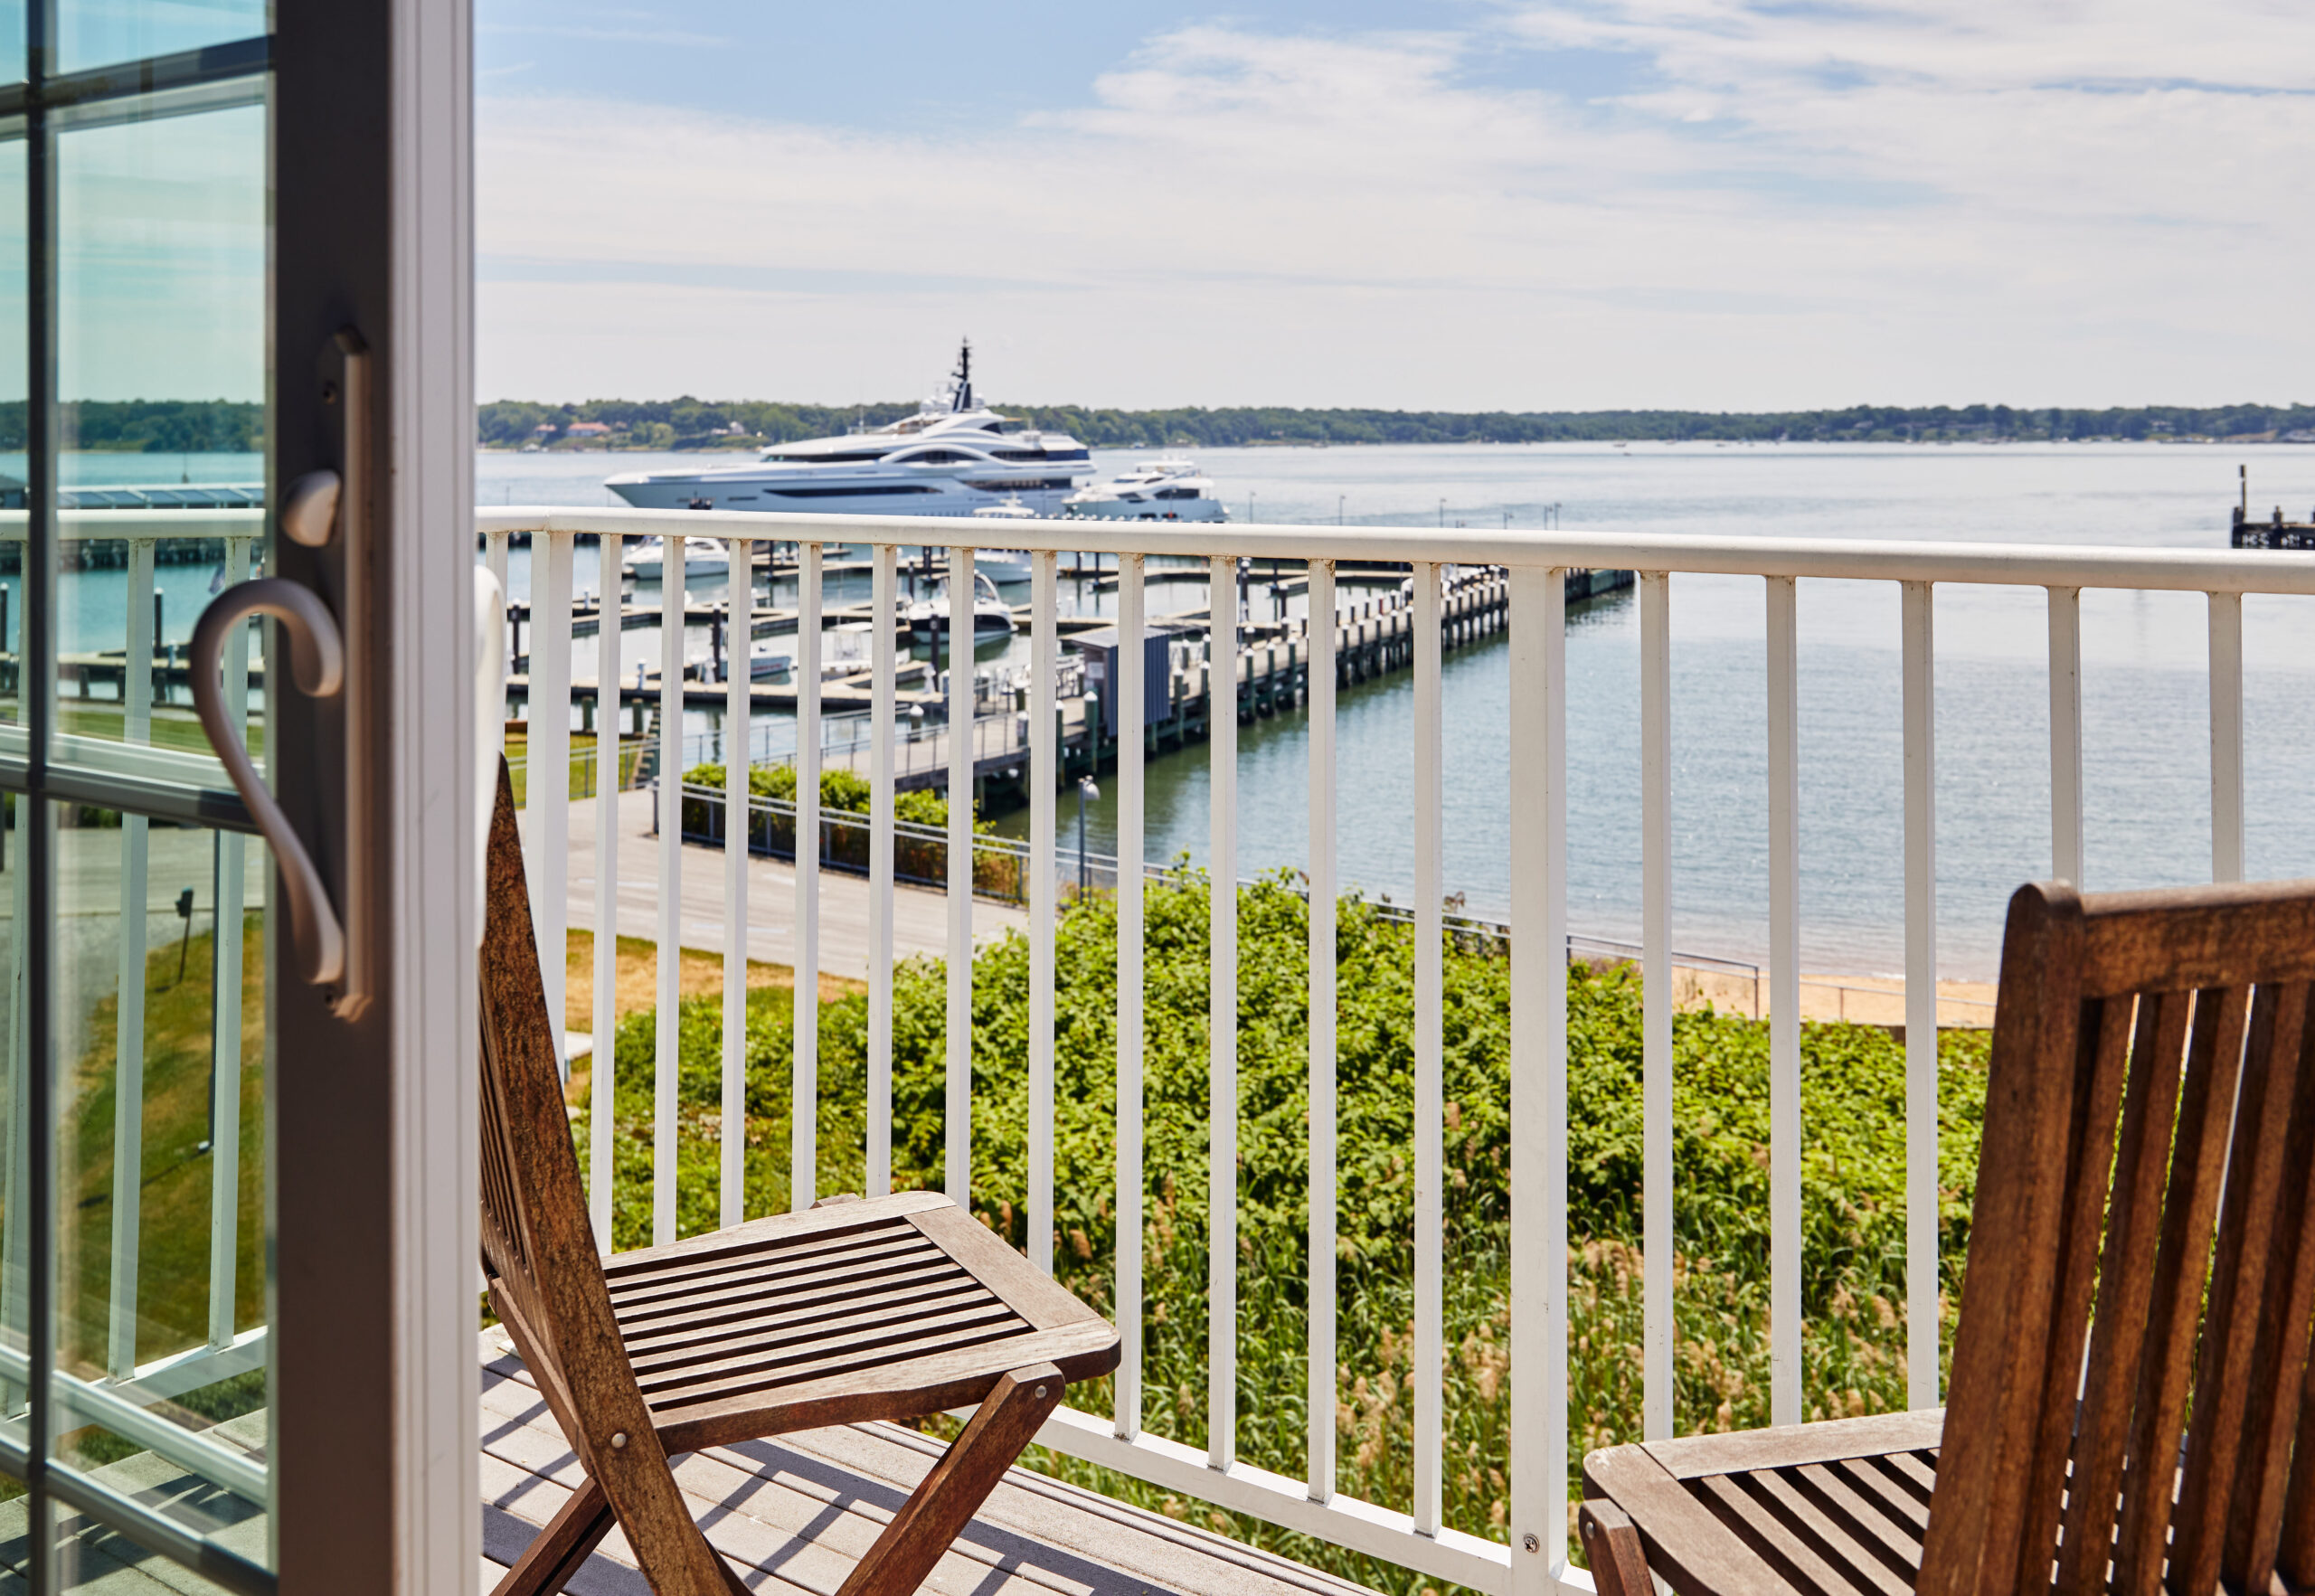 Balcony view overlooking Peconic Bay